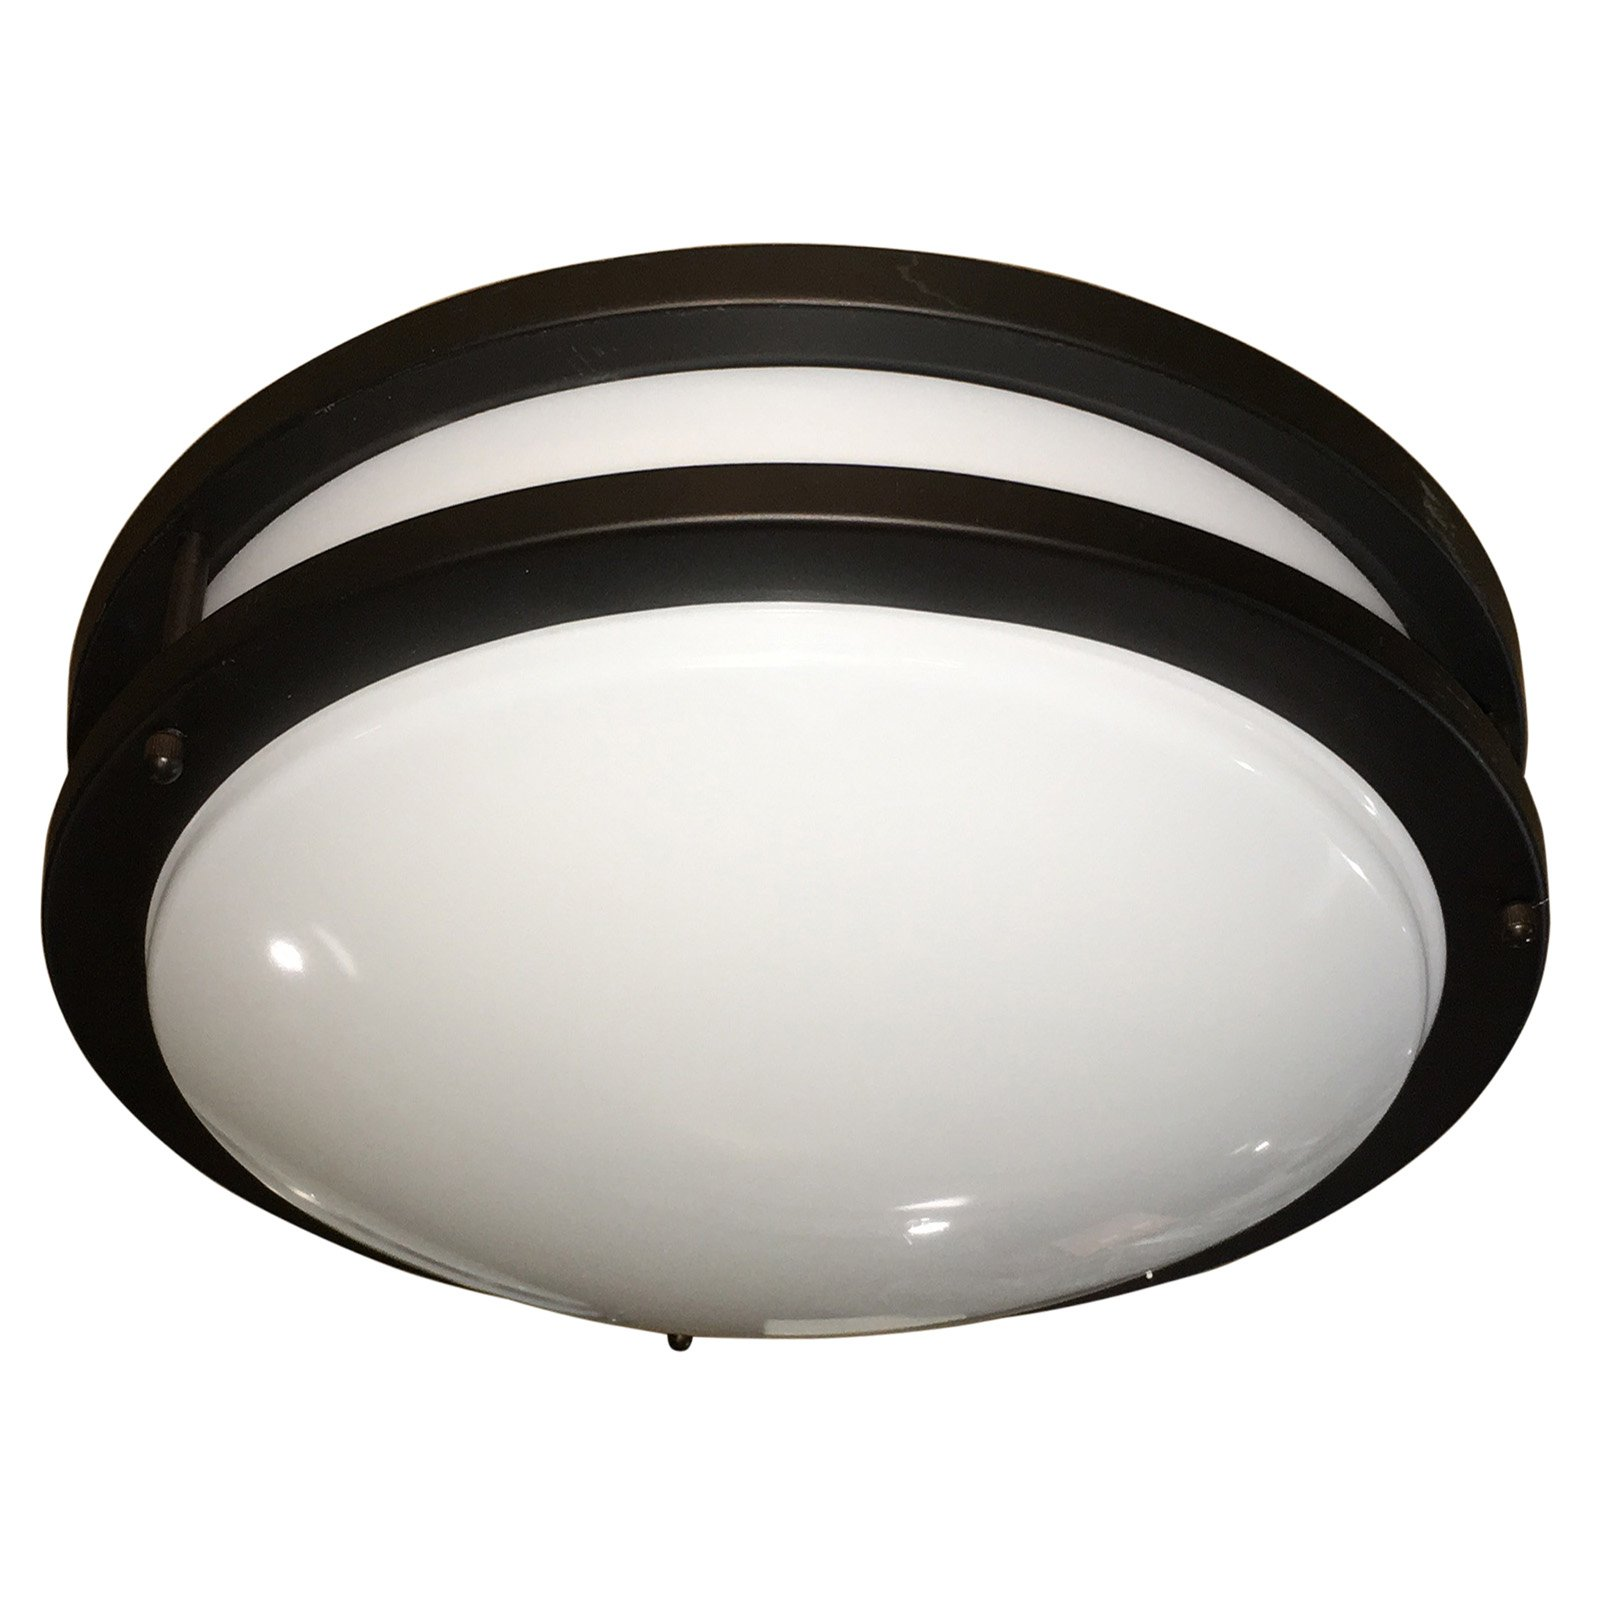 Euro Decorative 1 Circline Fluorescent Lighting in Oil Rubbed Bronze